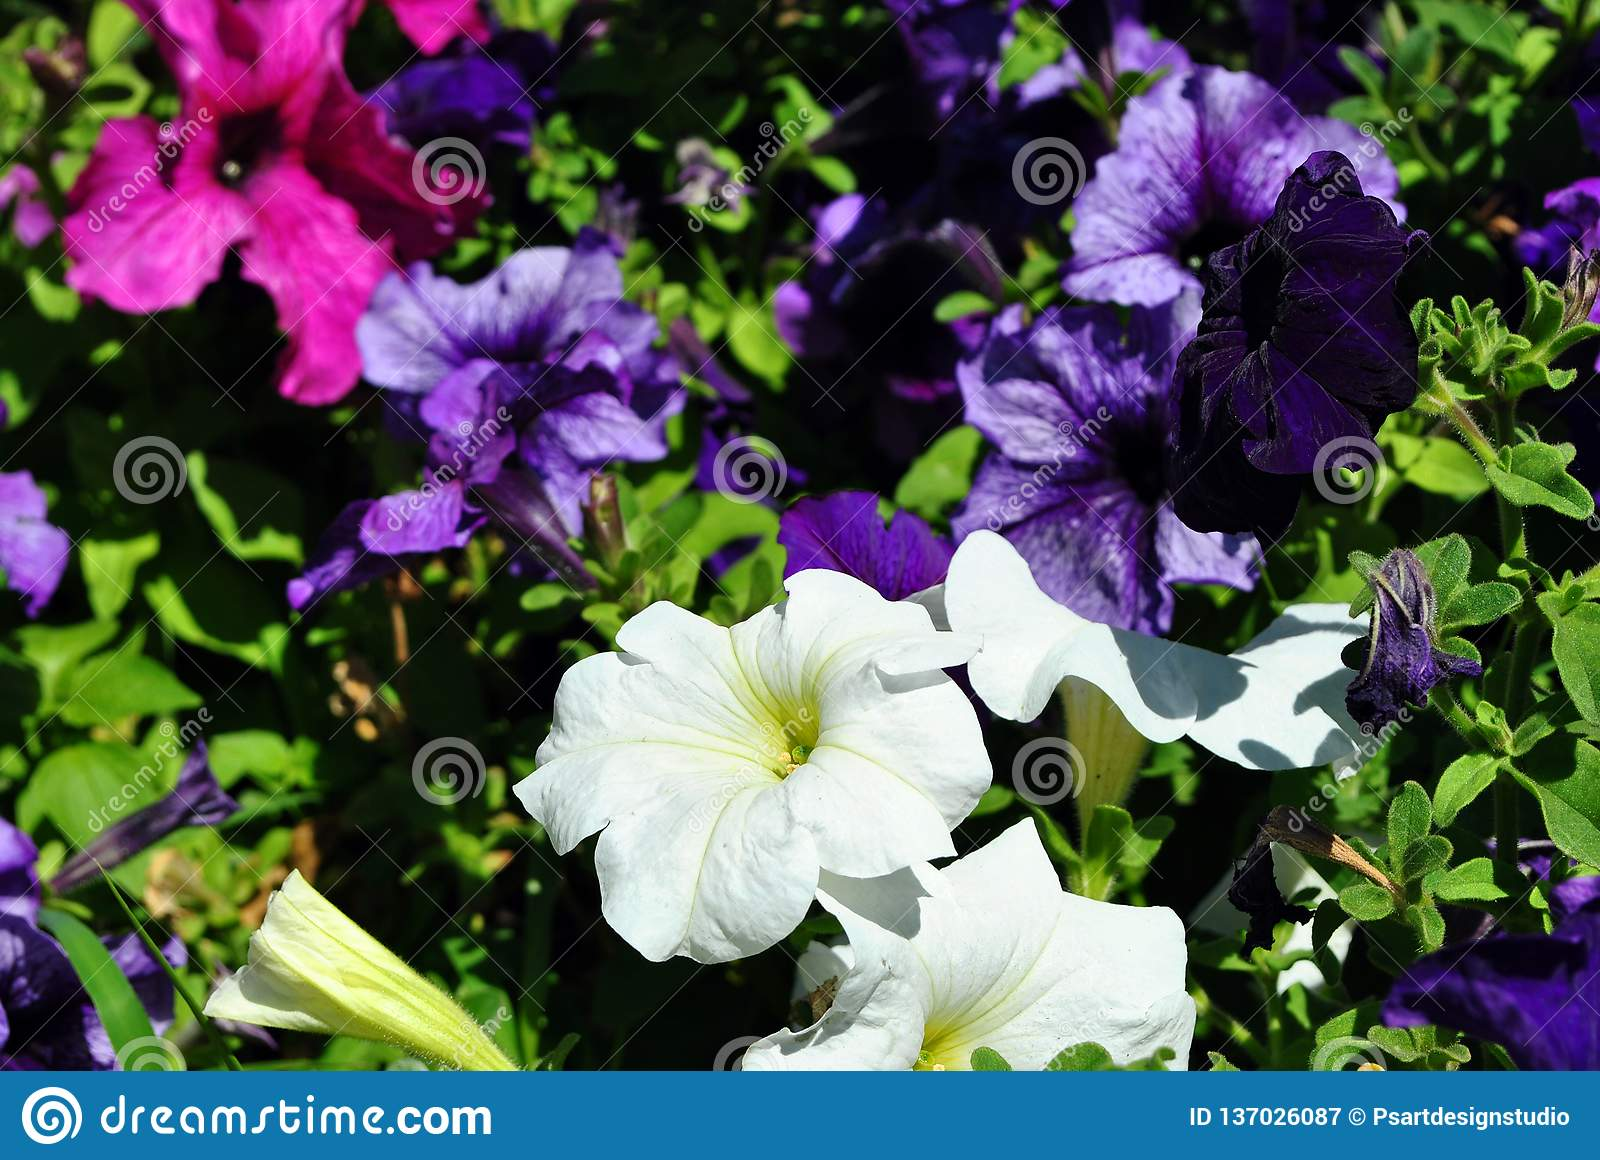 5361bf421f Petunia grandiflora pink, white and dark purple flowers, top view  background close up